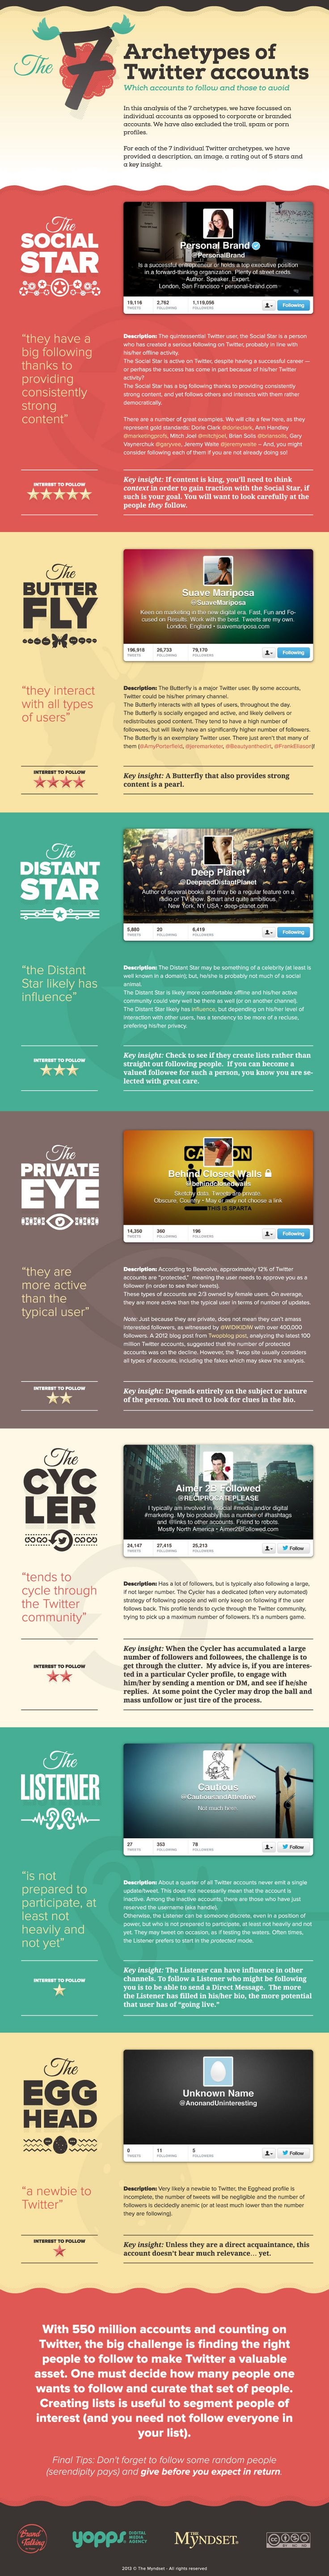 Archetypes in branding a toolkit for creatives and strategists ebook 17 best images about marketing on pinterest sale banner digital the 7 types of twitter accounts fandeluxe Images